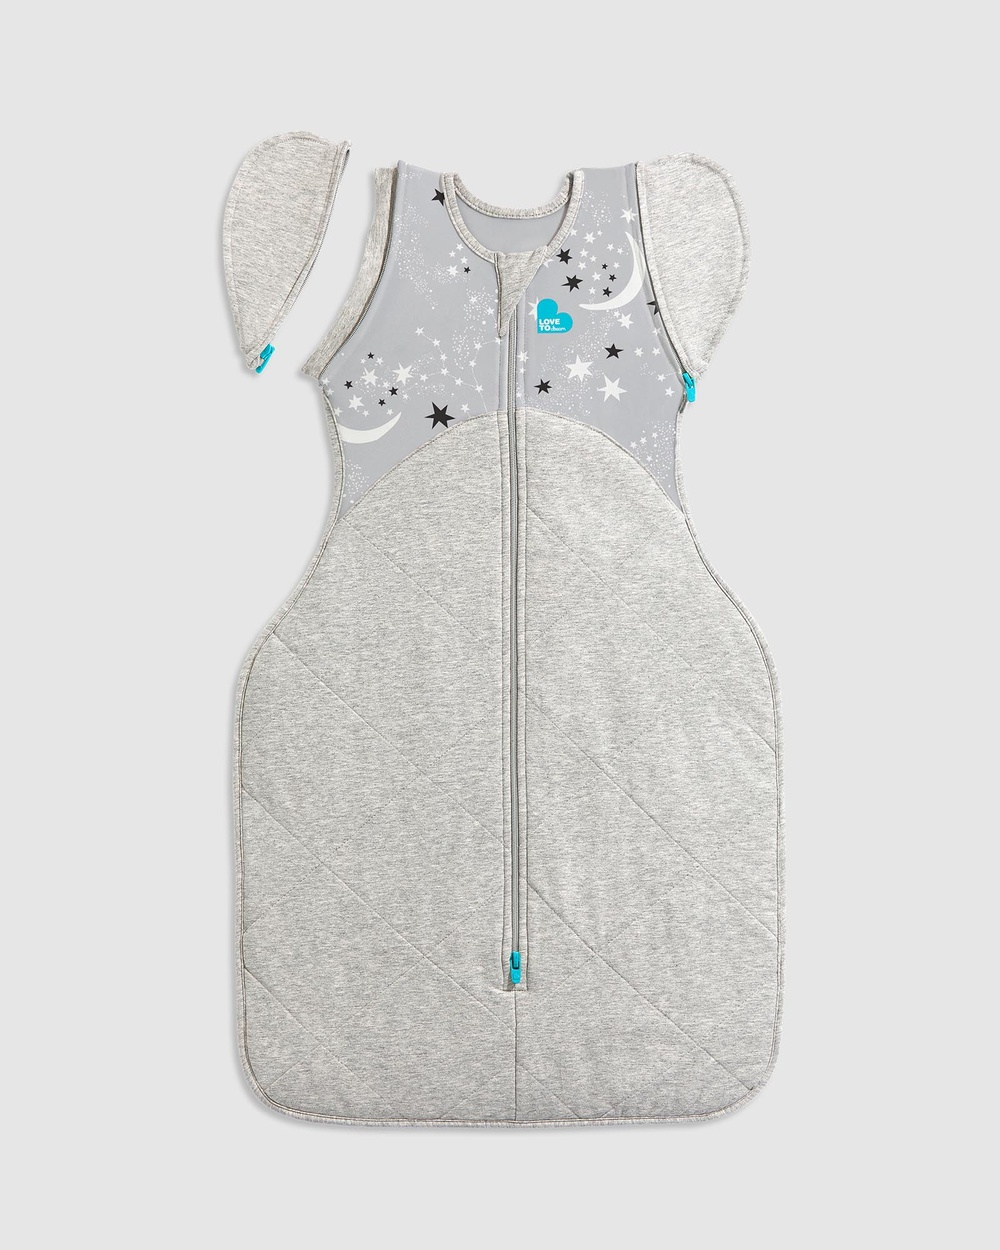 Love to Dream SWADDLE UP Transition Bag Extra Warm 3.5 Tog Sleep & Swaddles Grey Moon Stars